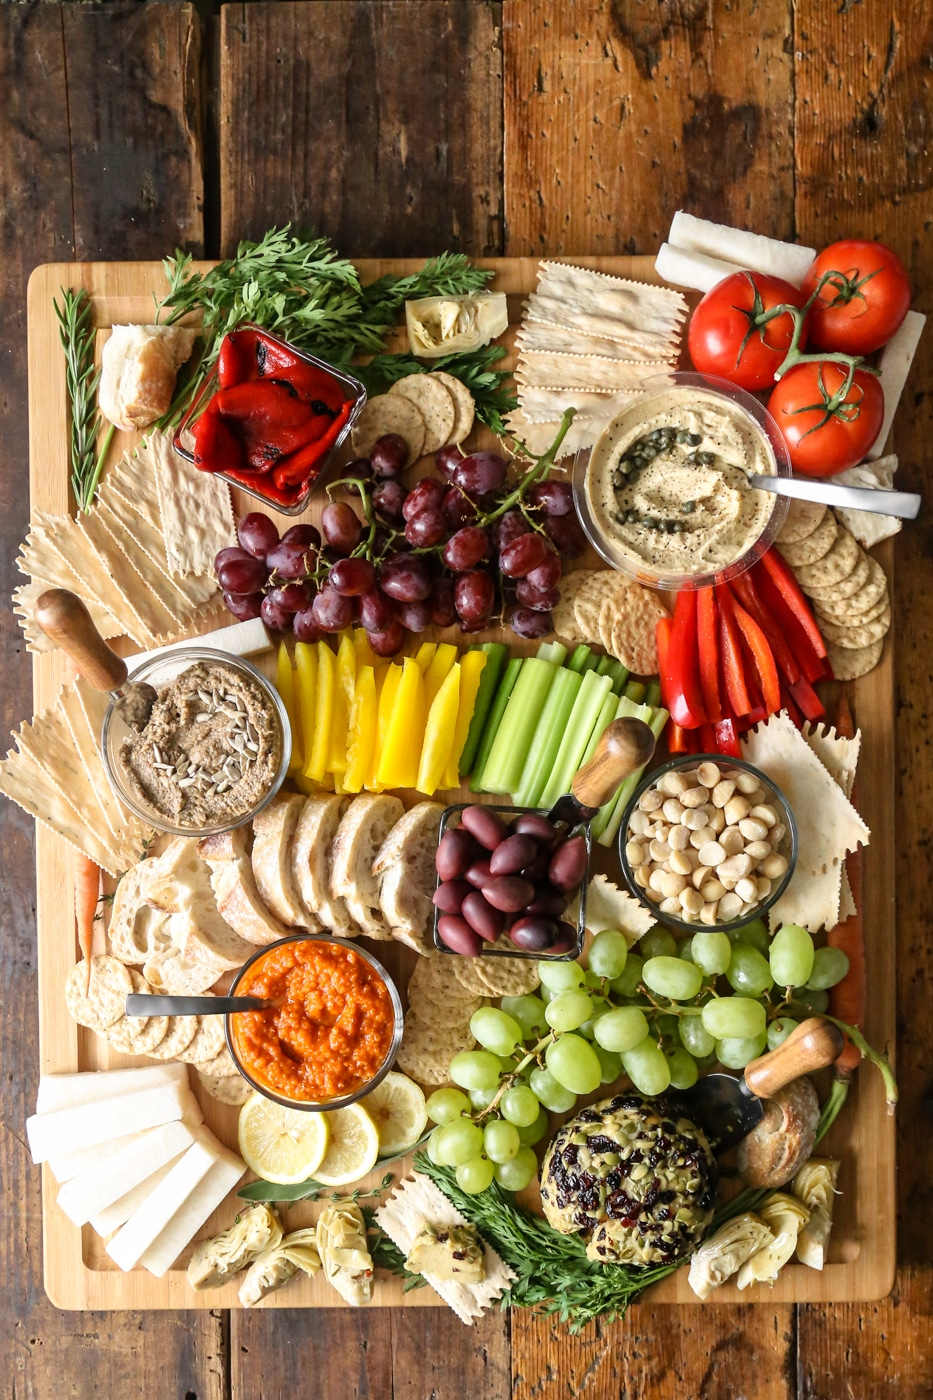 veagn charcuterie board by Plant Philosophy for Thanksgiving appetizer recipe